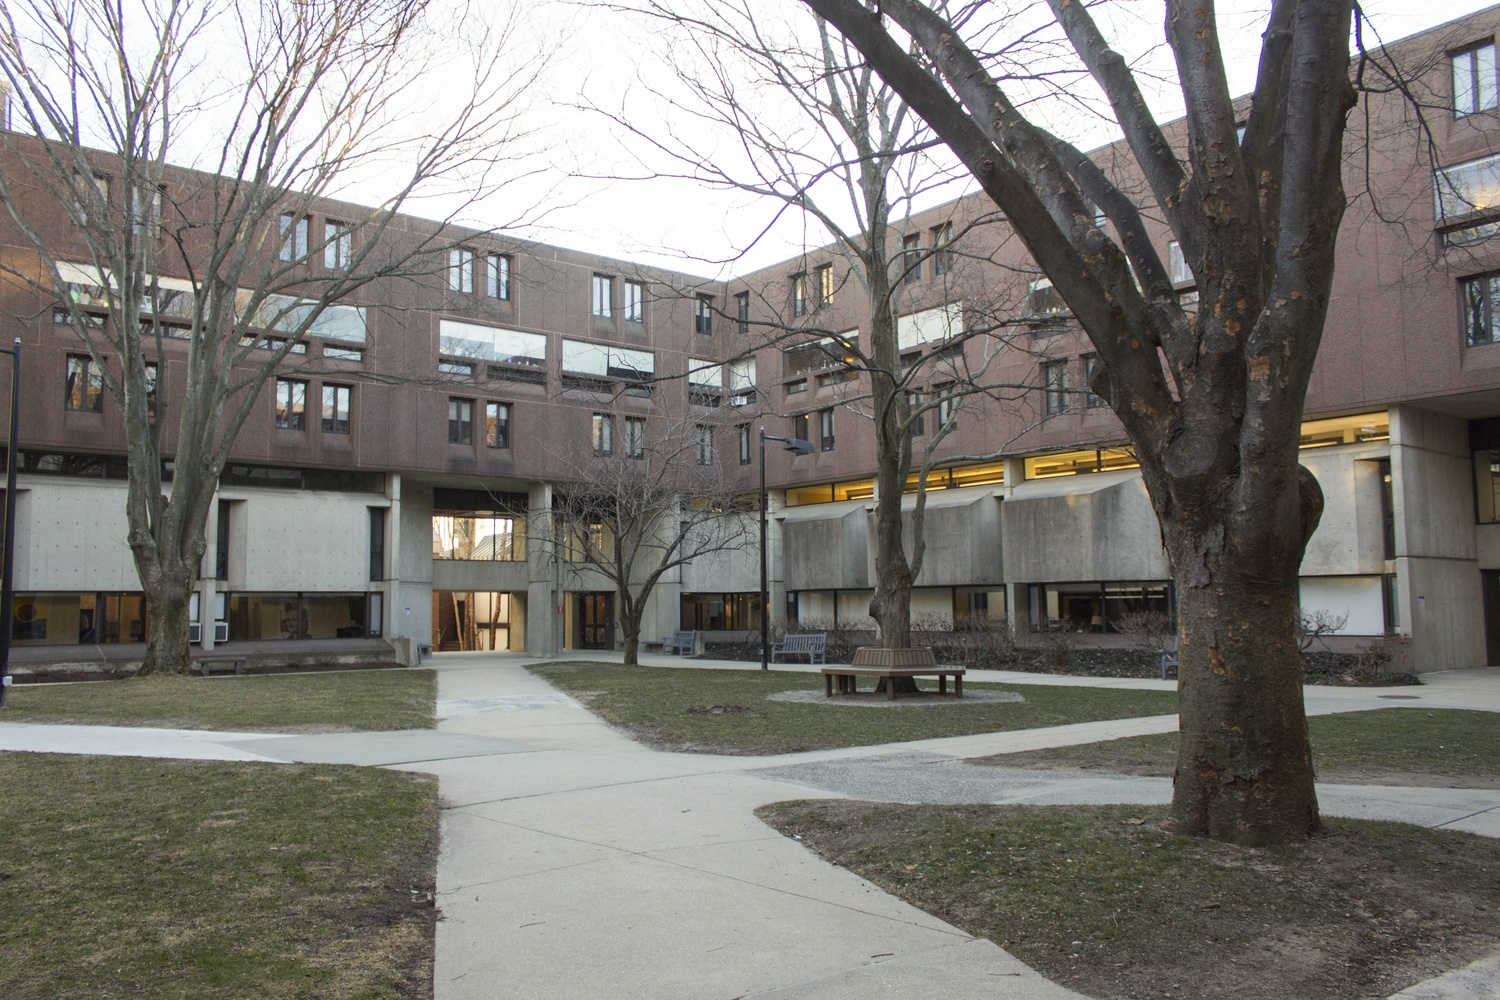 Mather Courtyard